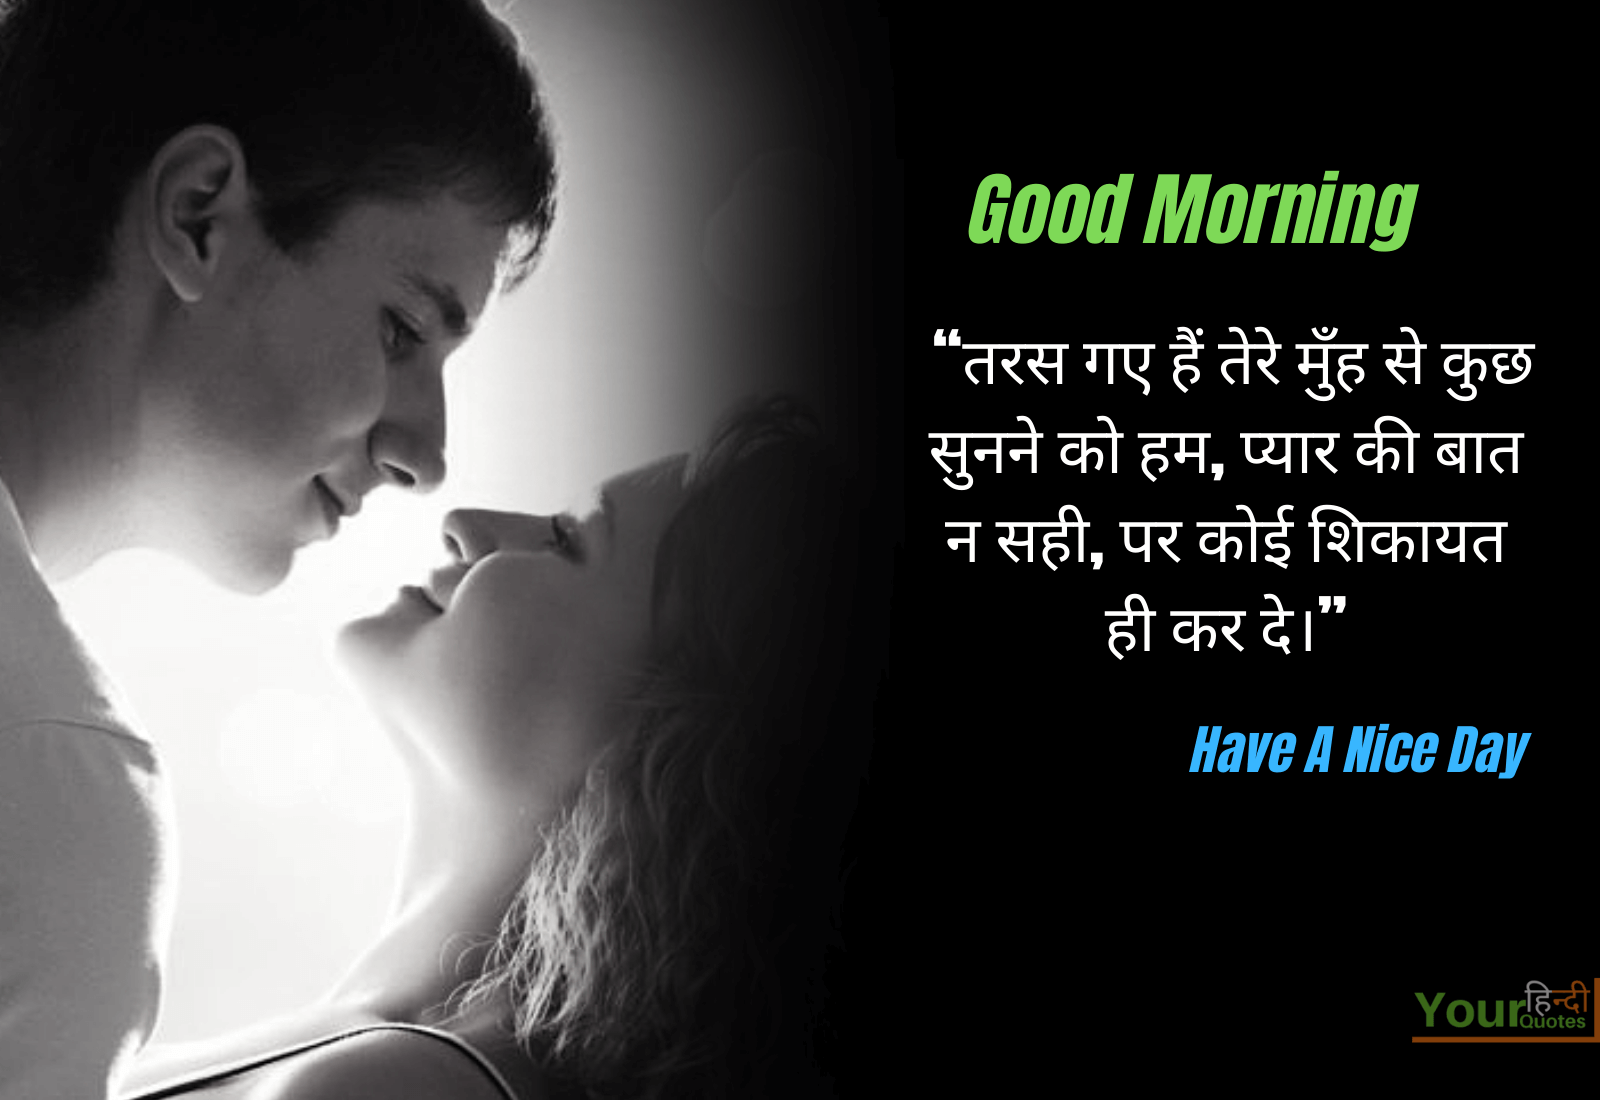 Good Morning Hindi Quote Image